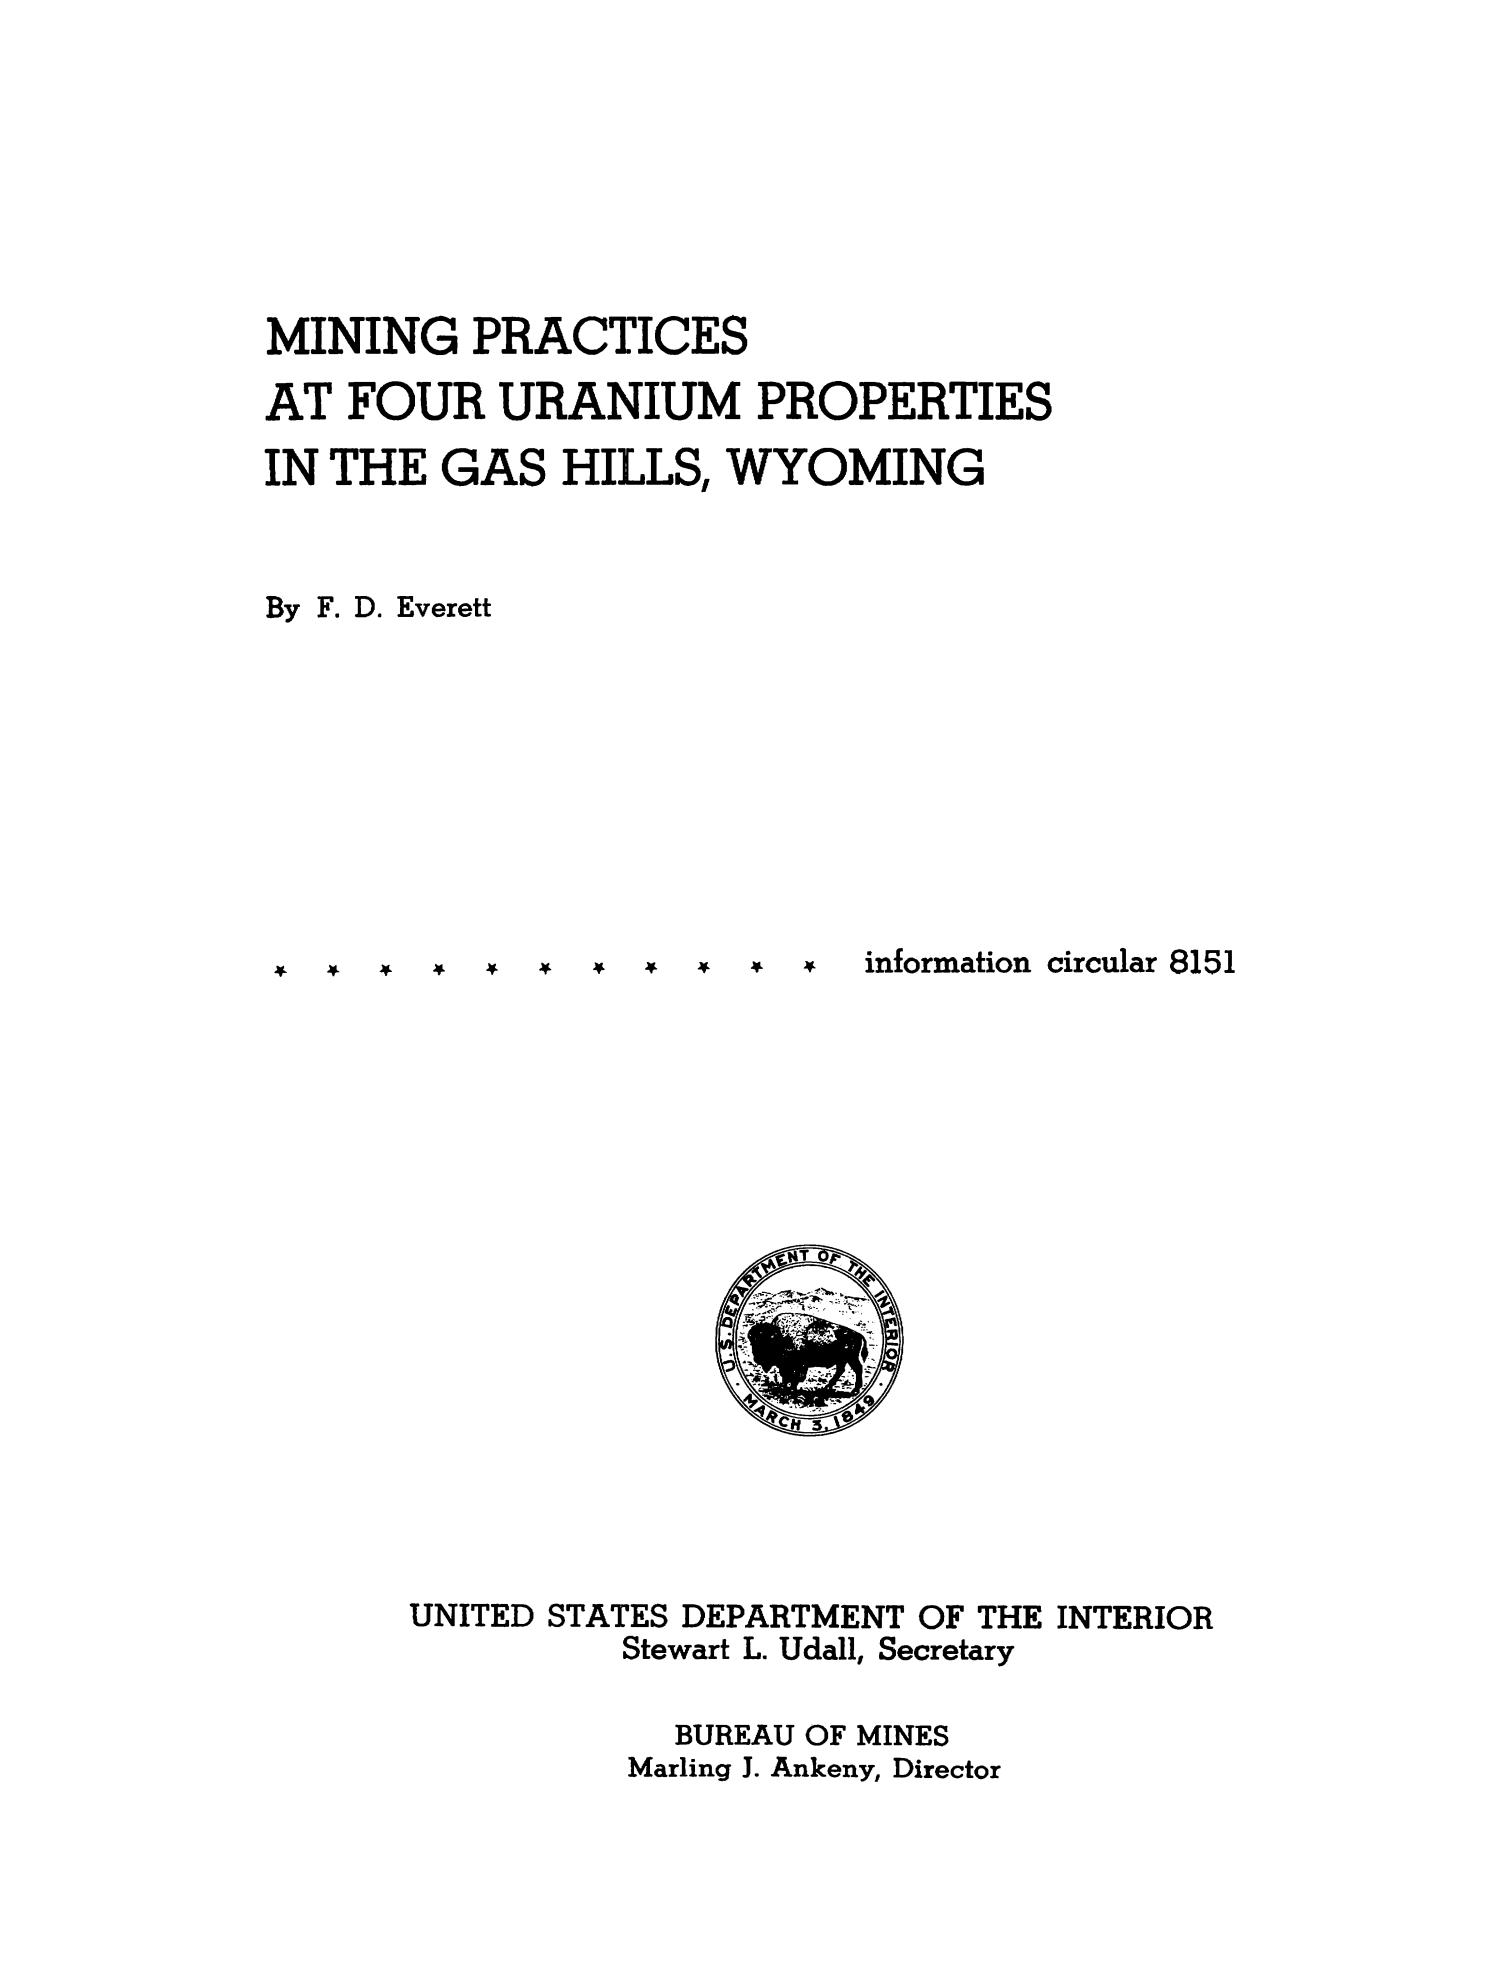 Mining Practices at Four Uranium Properties in the Gas Hills, Wyoming                                                                                                      Title Page